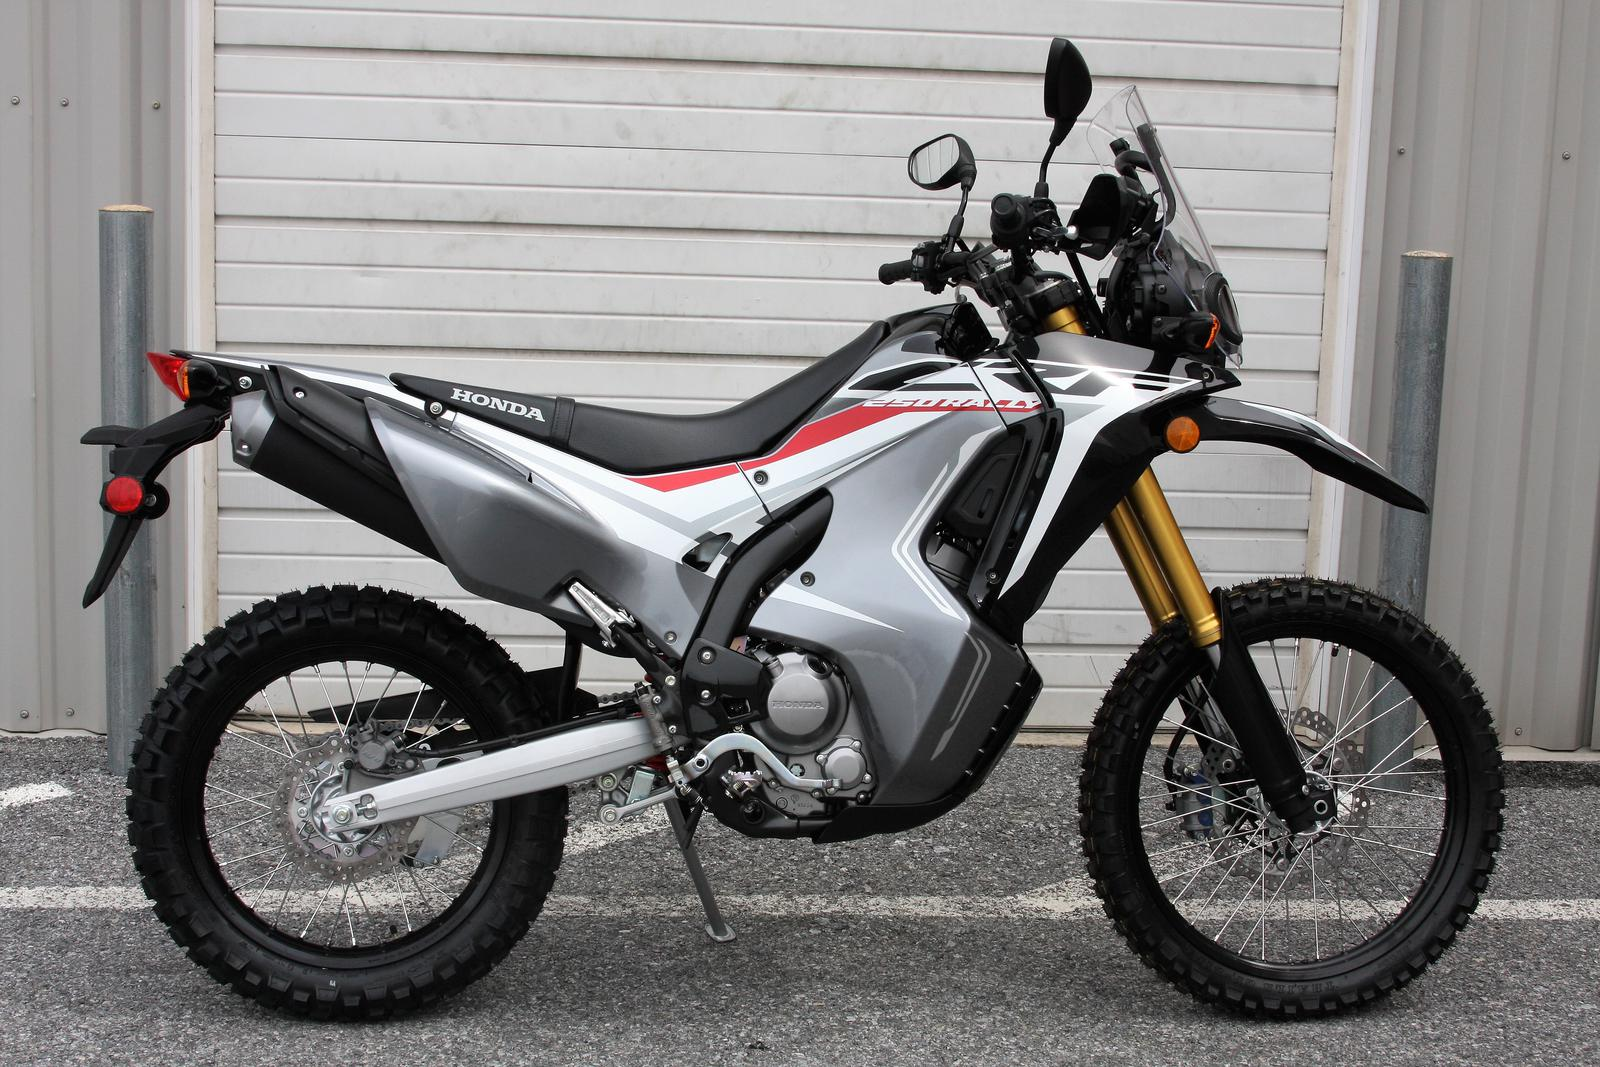 2018 Honda Crf250l Rally For Sale In York Pa Ams Action